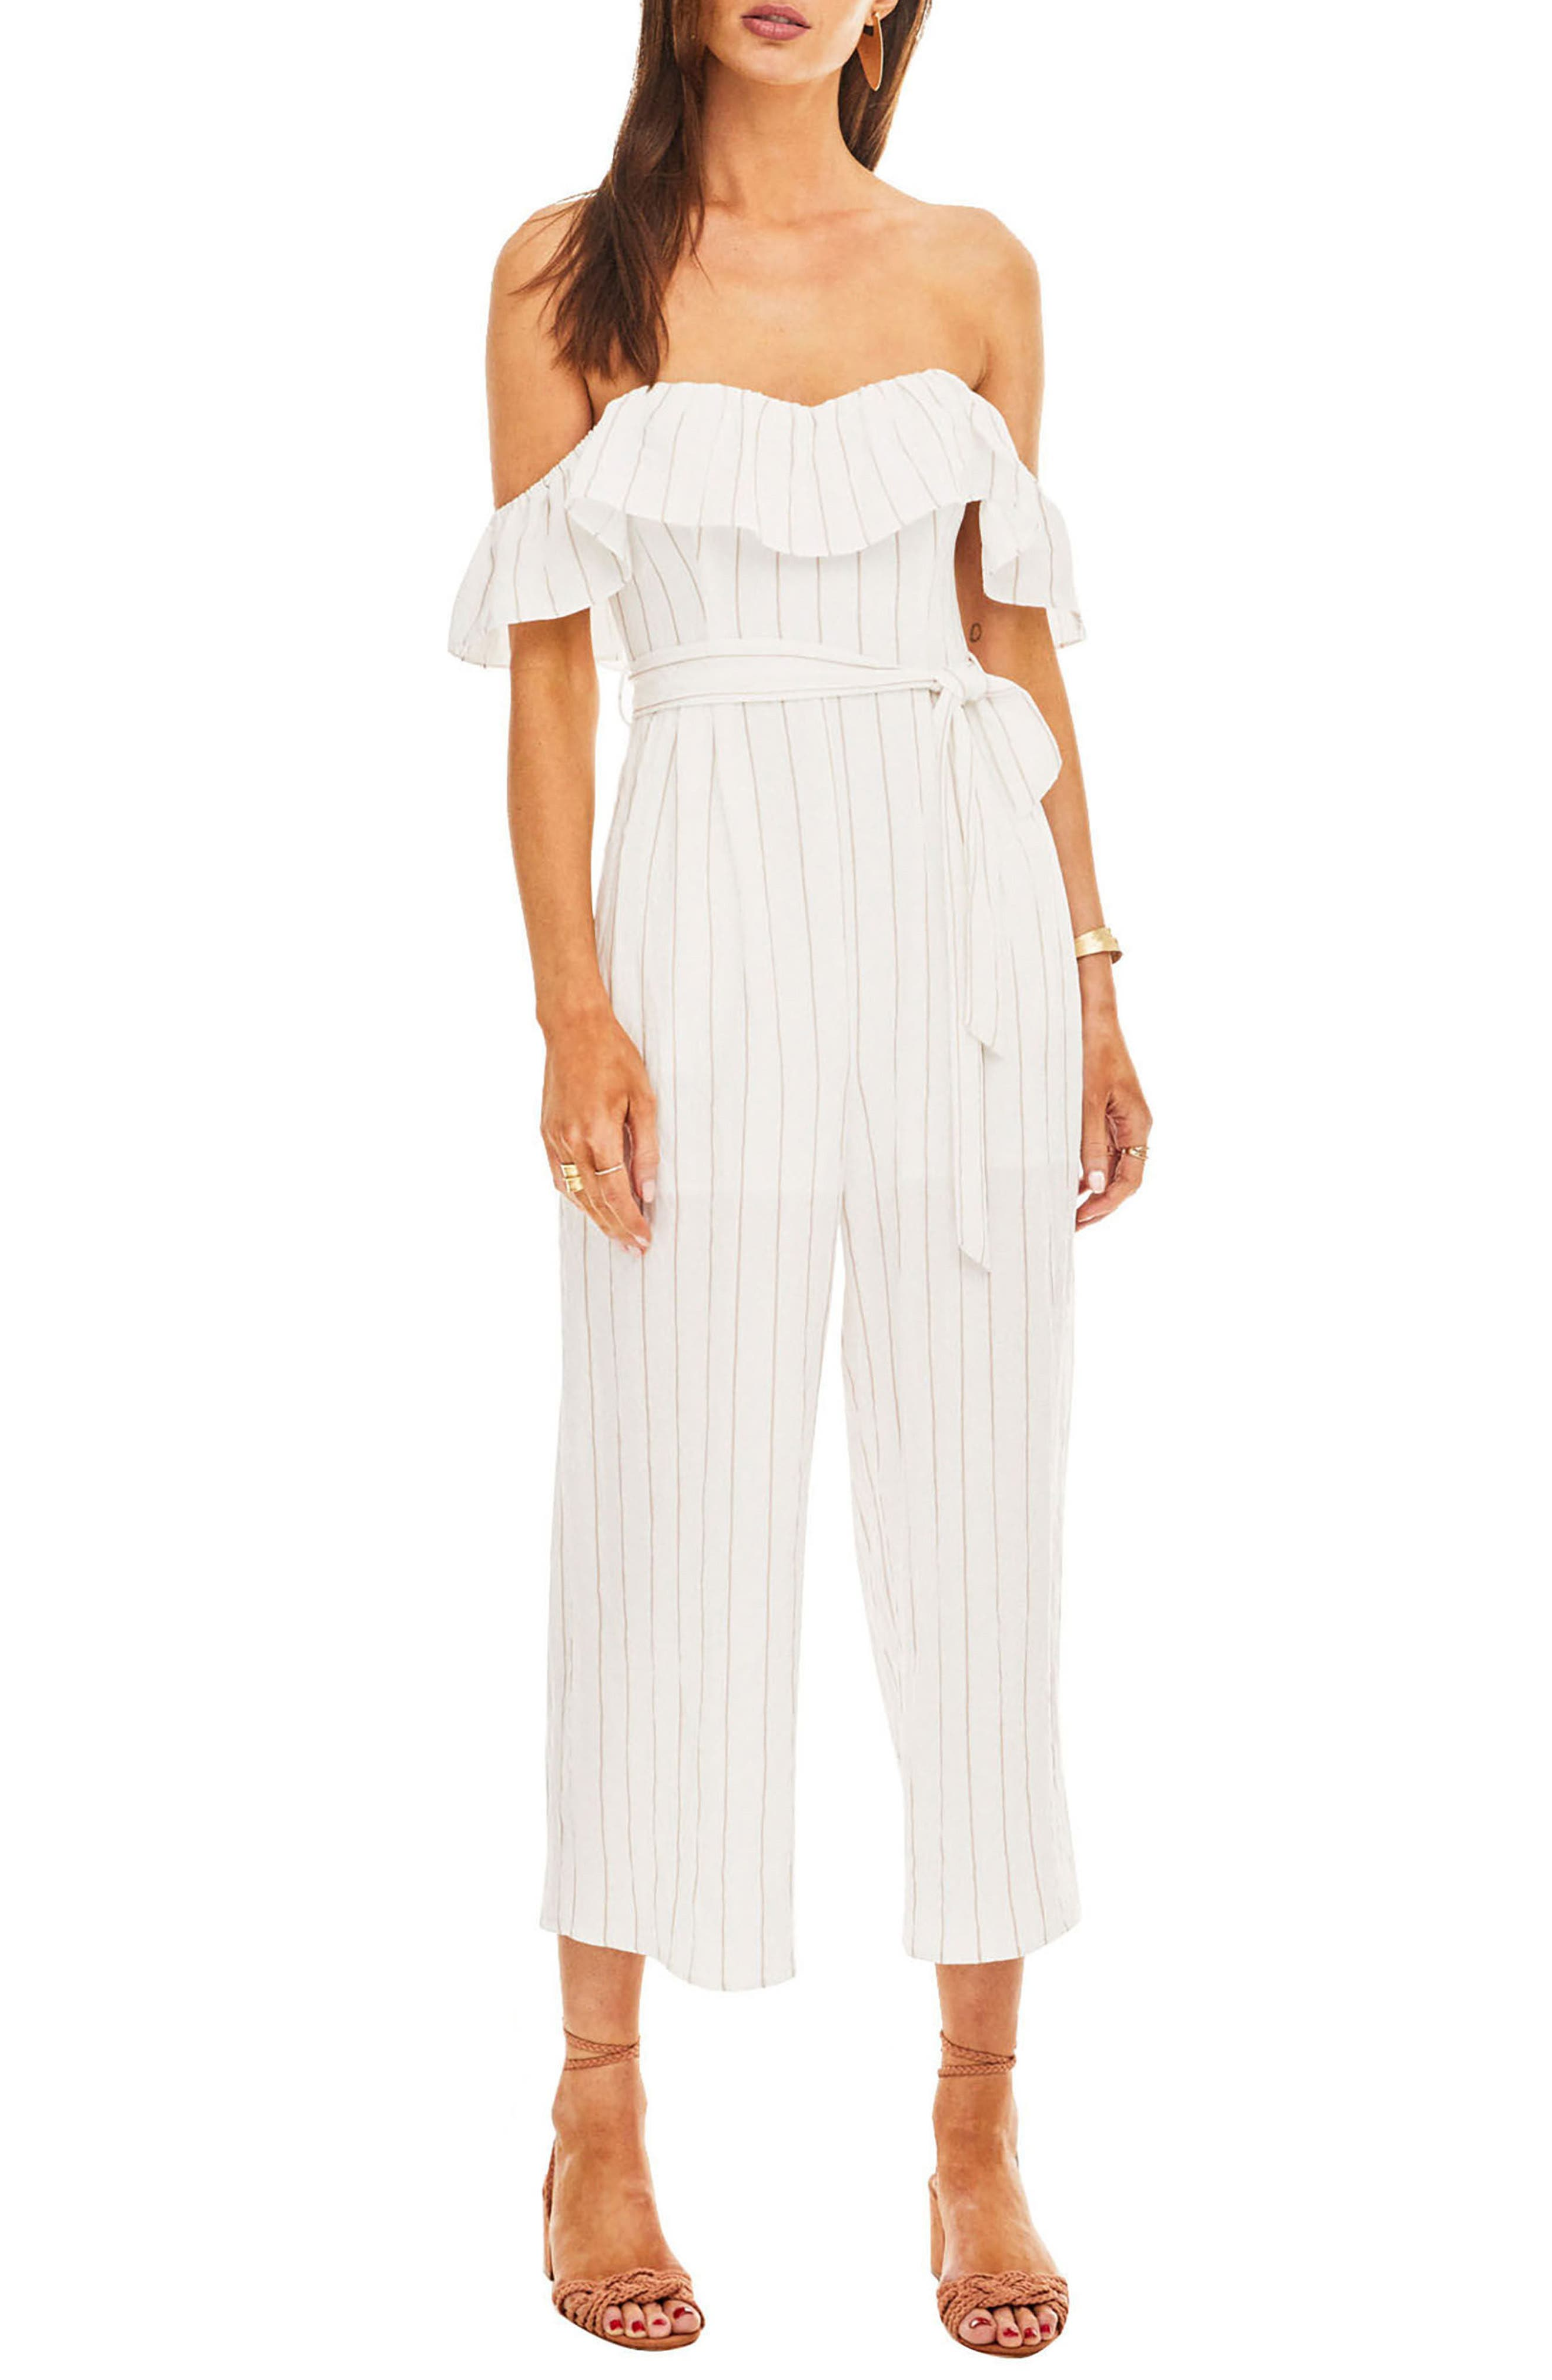 ASTR Keely Strapless Jumpsuit,                         Main,                         color, 100